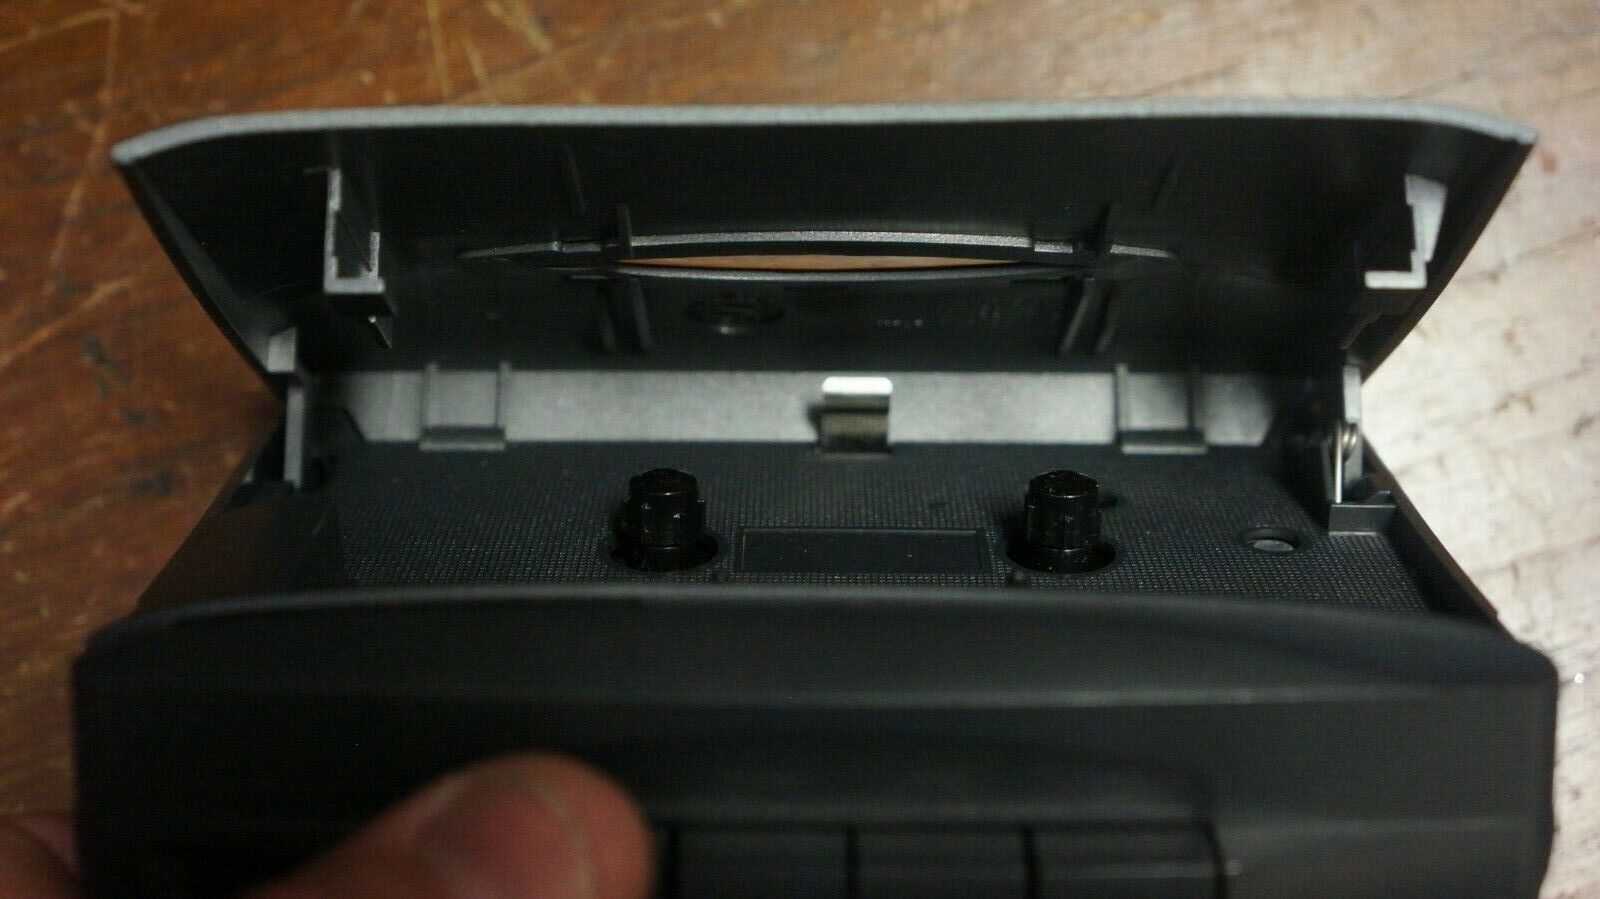 RCA AM FM RADIO CASSETTE PLAYER AS IS PARTS OR REPAIR - $9.95